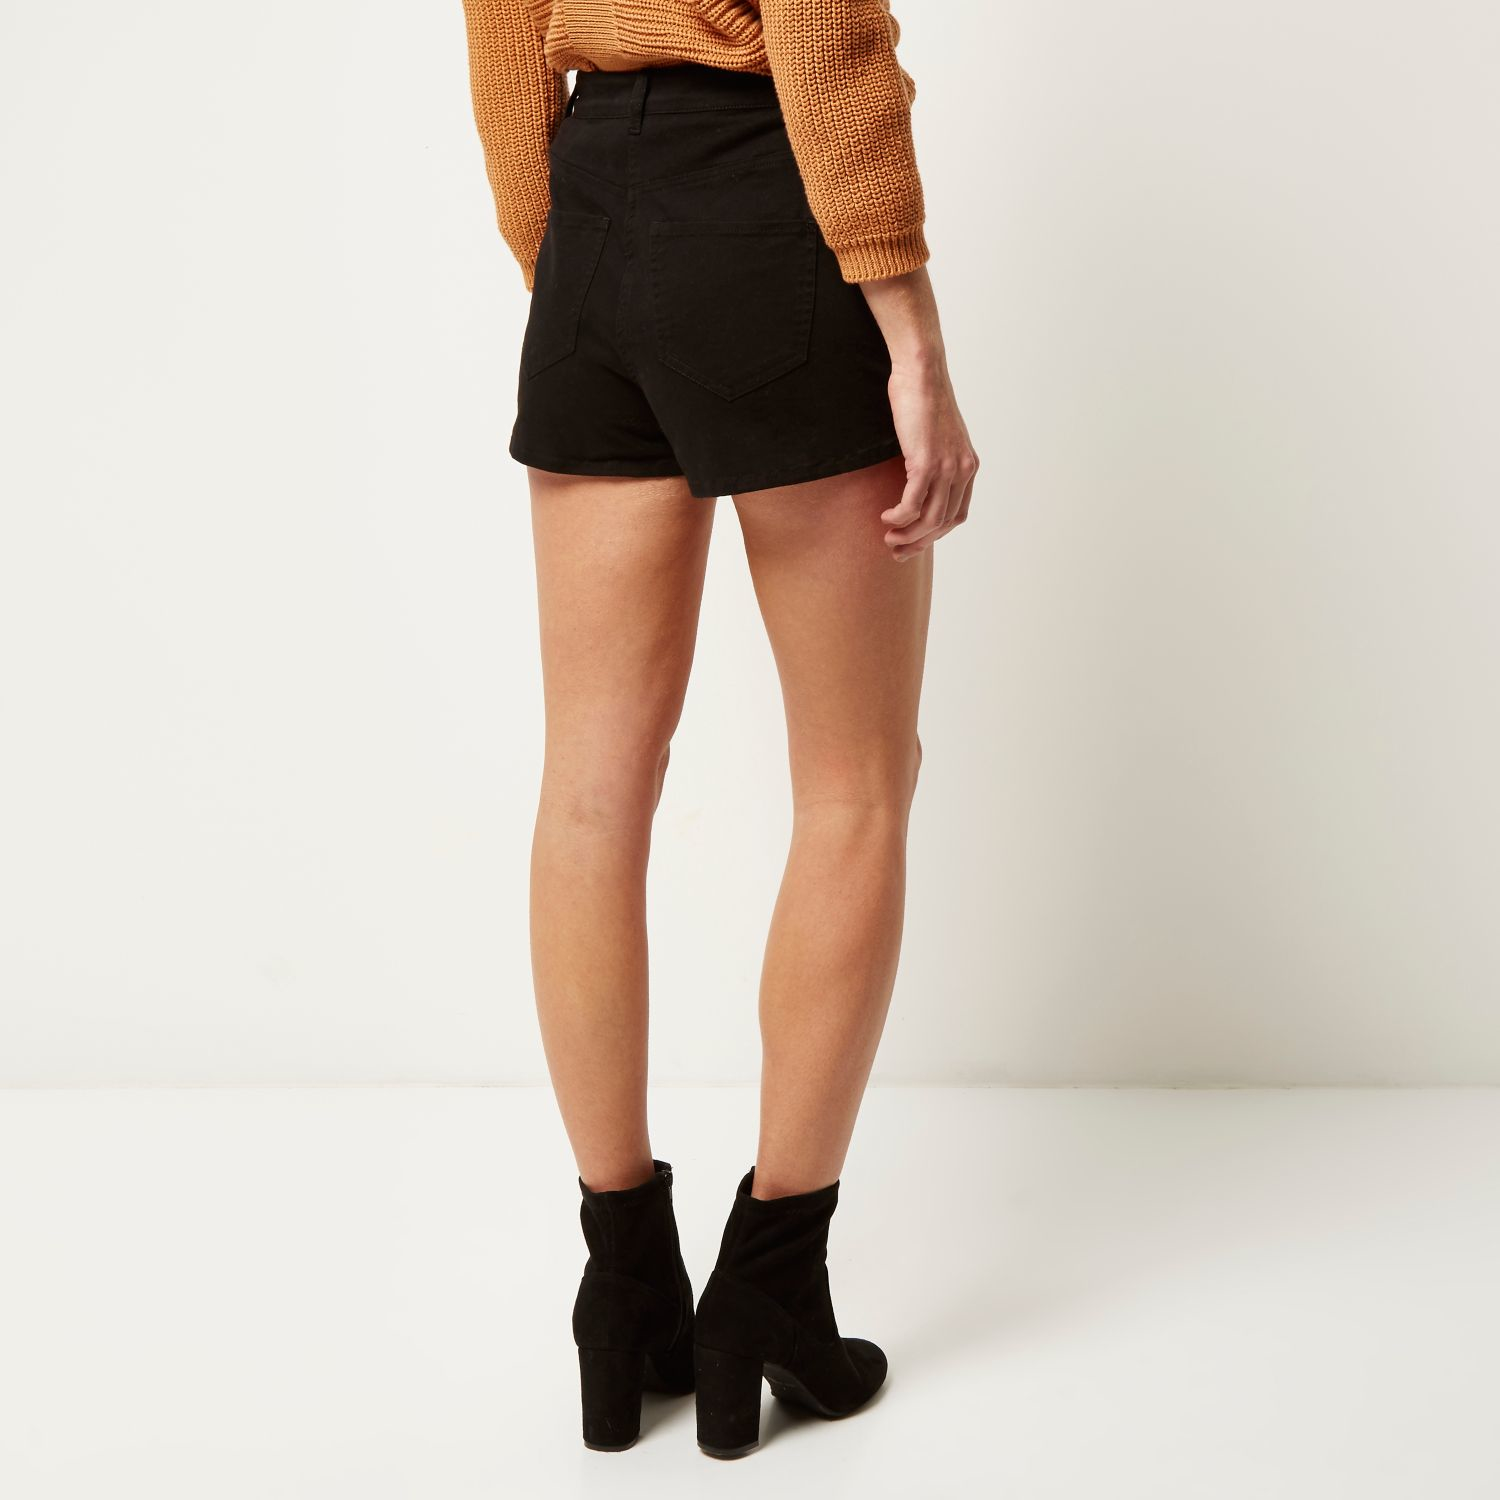 River island Lace-Up High-Waisted Shorts in Natural   Lyst